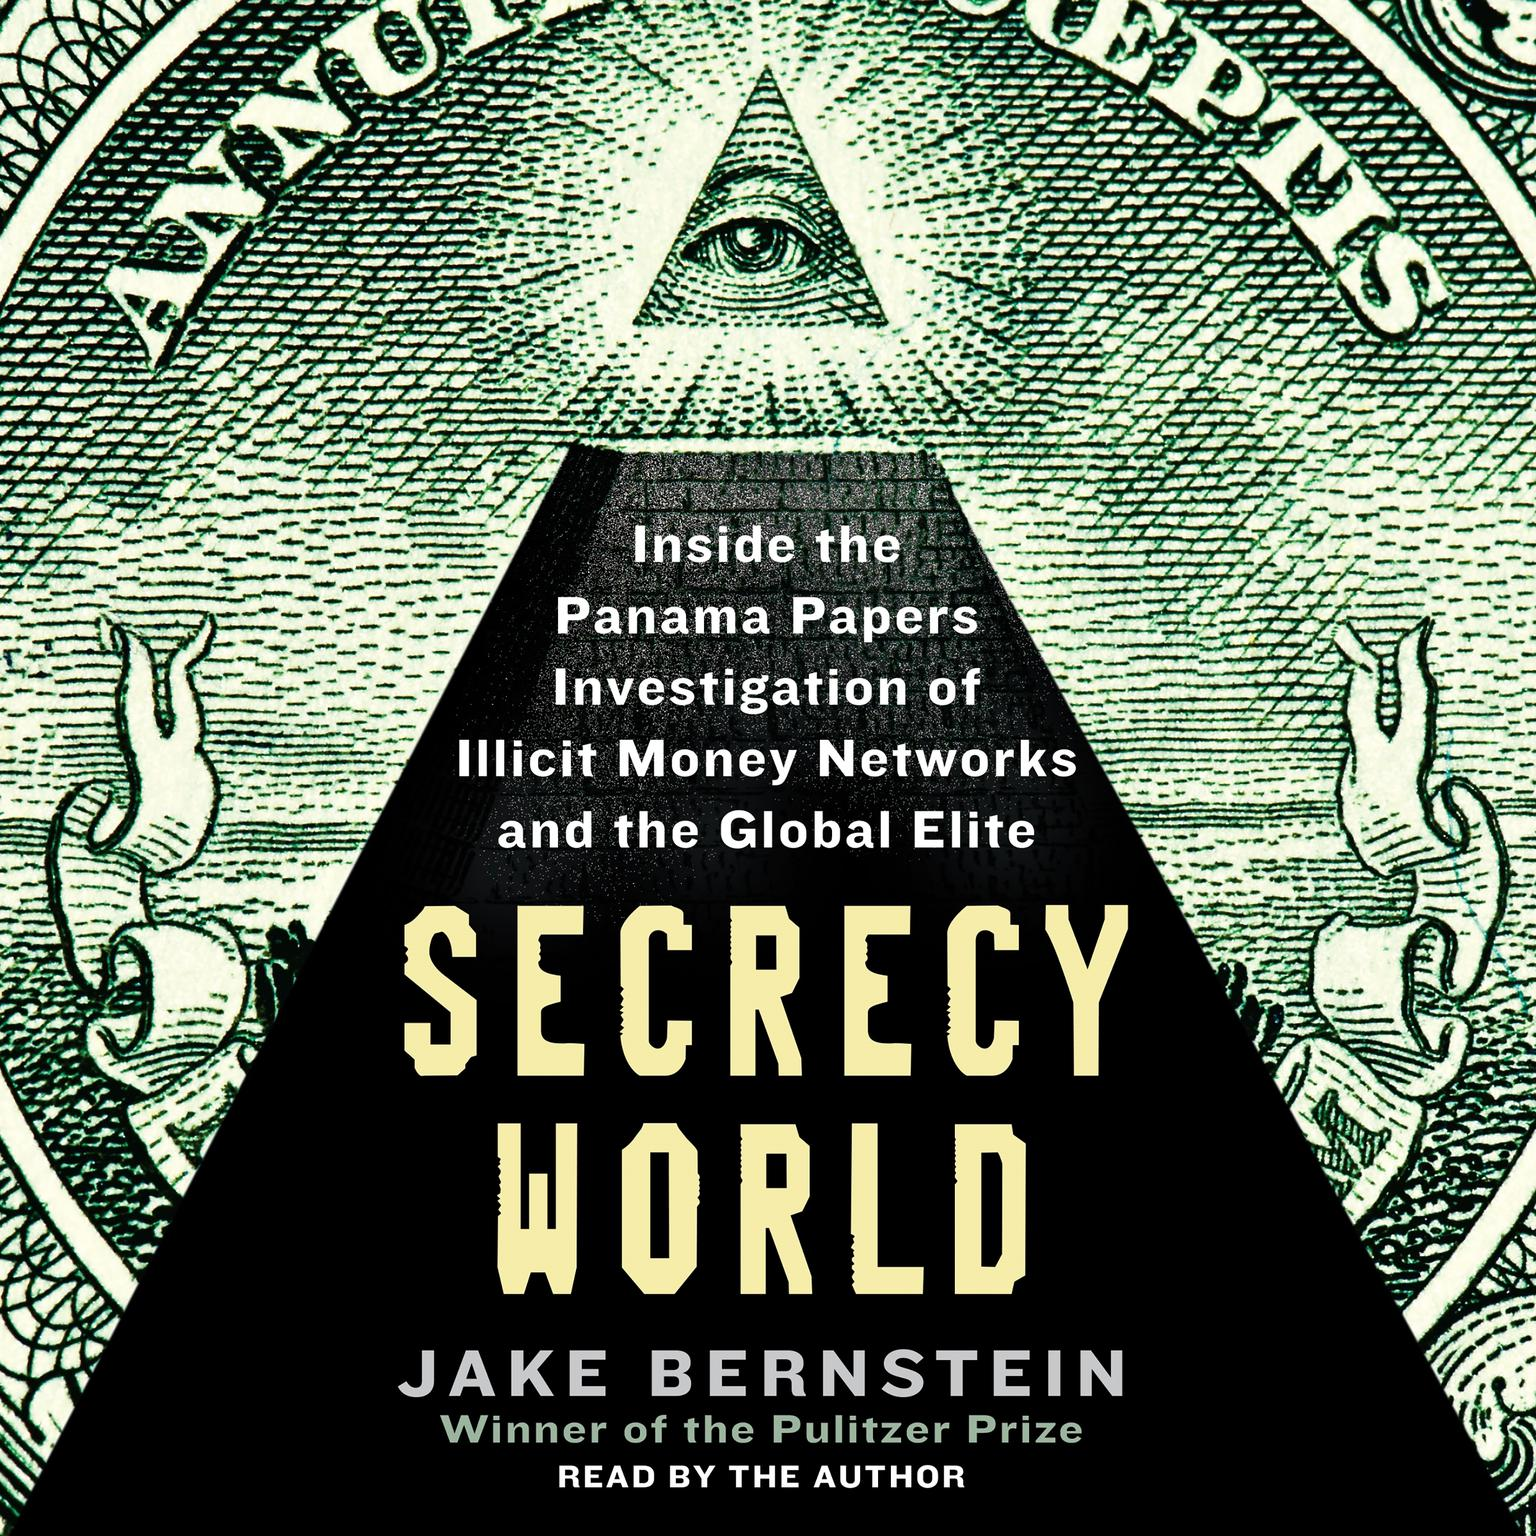 Secrecy World: Inside the Panama Papers Investigation of Illicit Money Networks and the Global Elite Audiobook, by Jake Bernstein